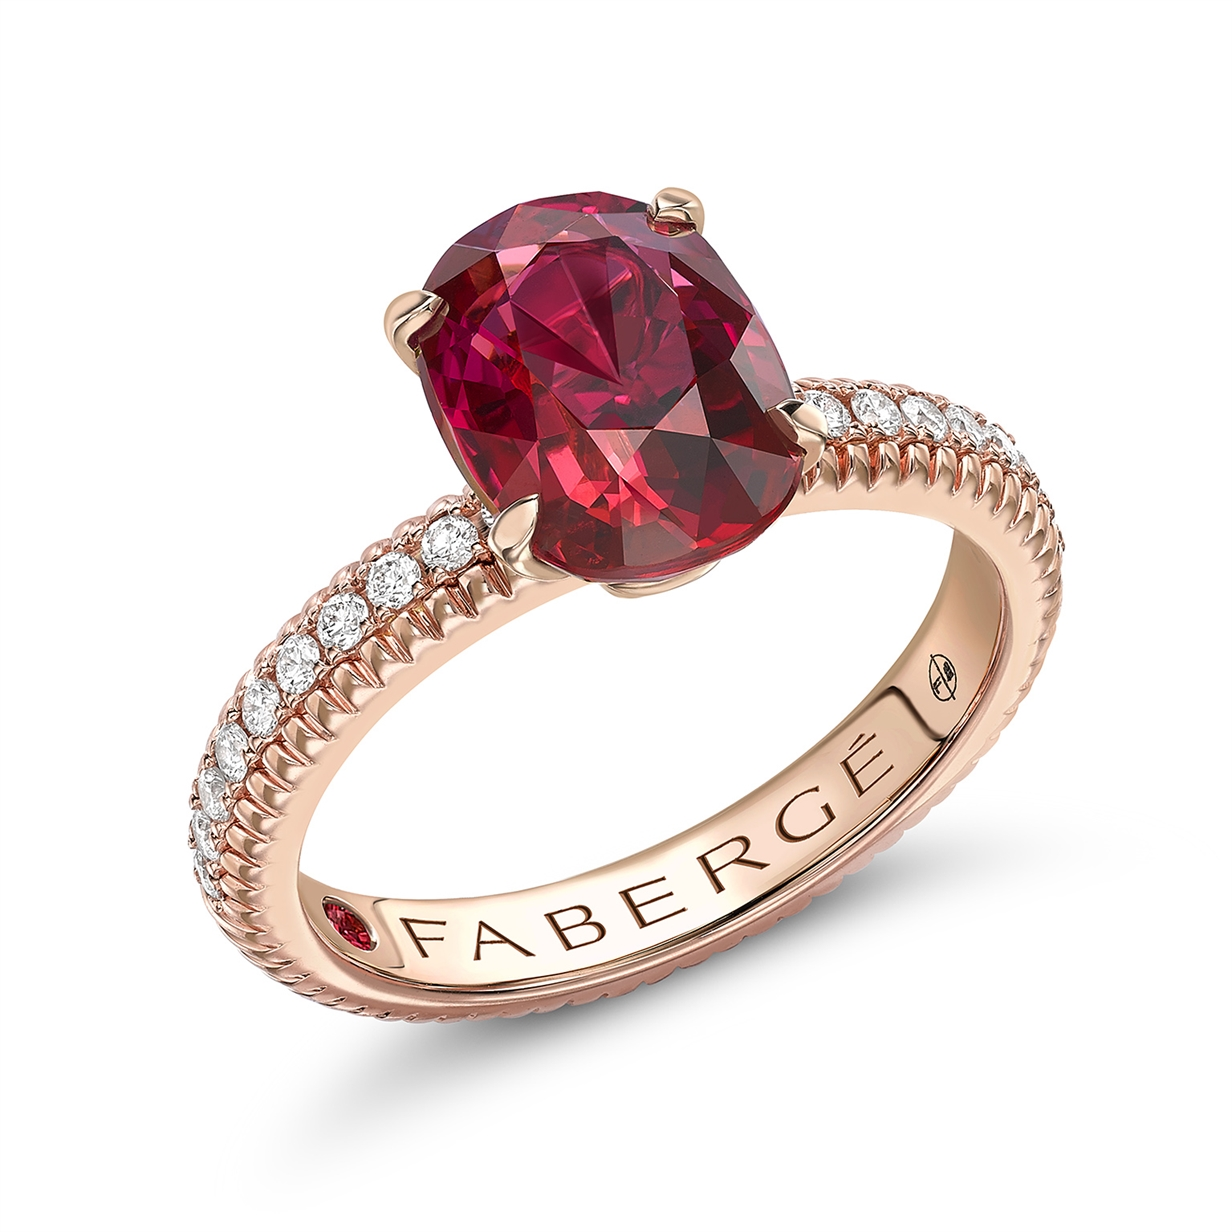 18K Rose Gold Oval Ruby Engagement Ring With Diamond Set Shoulders